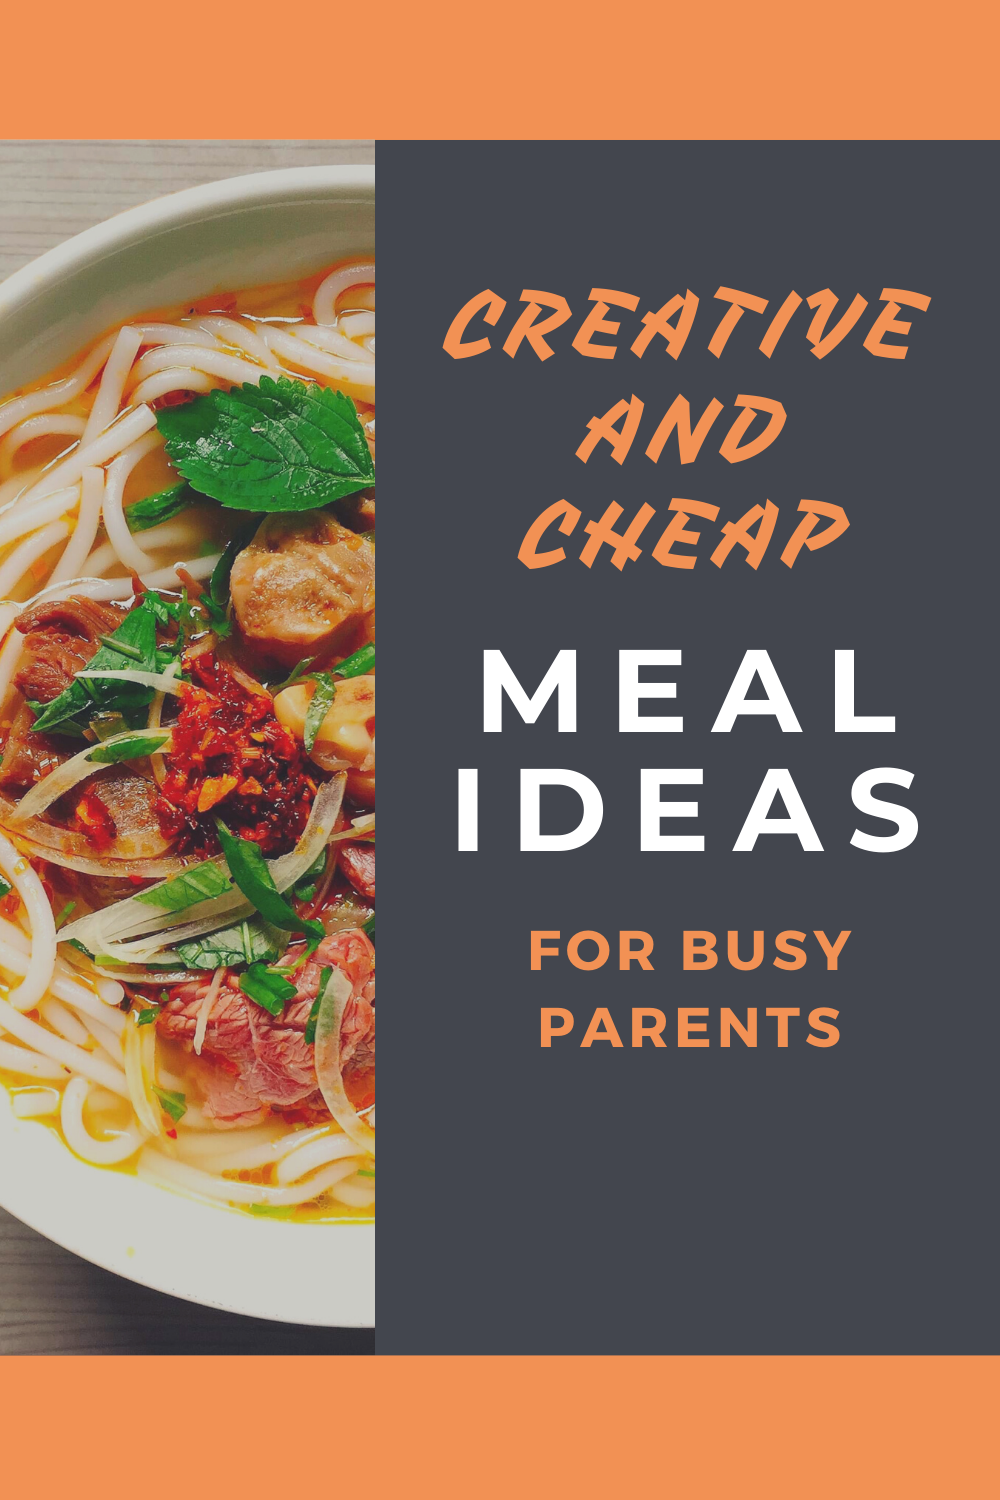 Creative Cheap Meals For Busy Parents